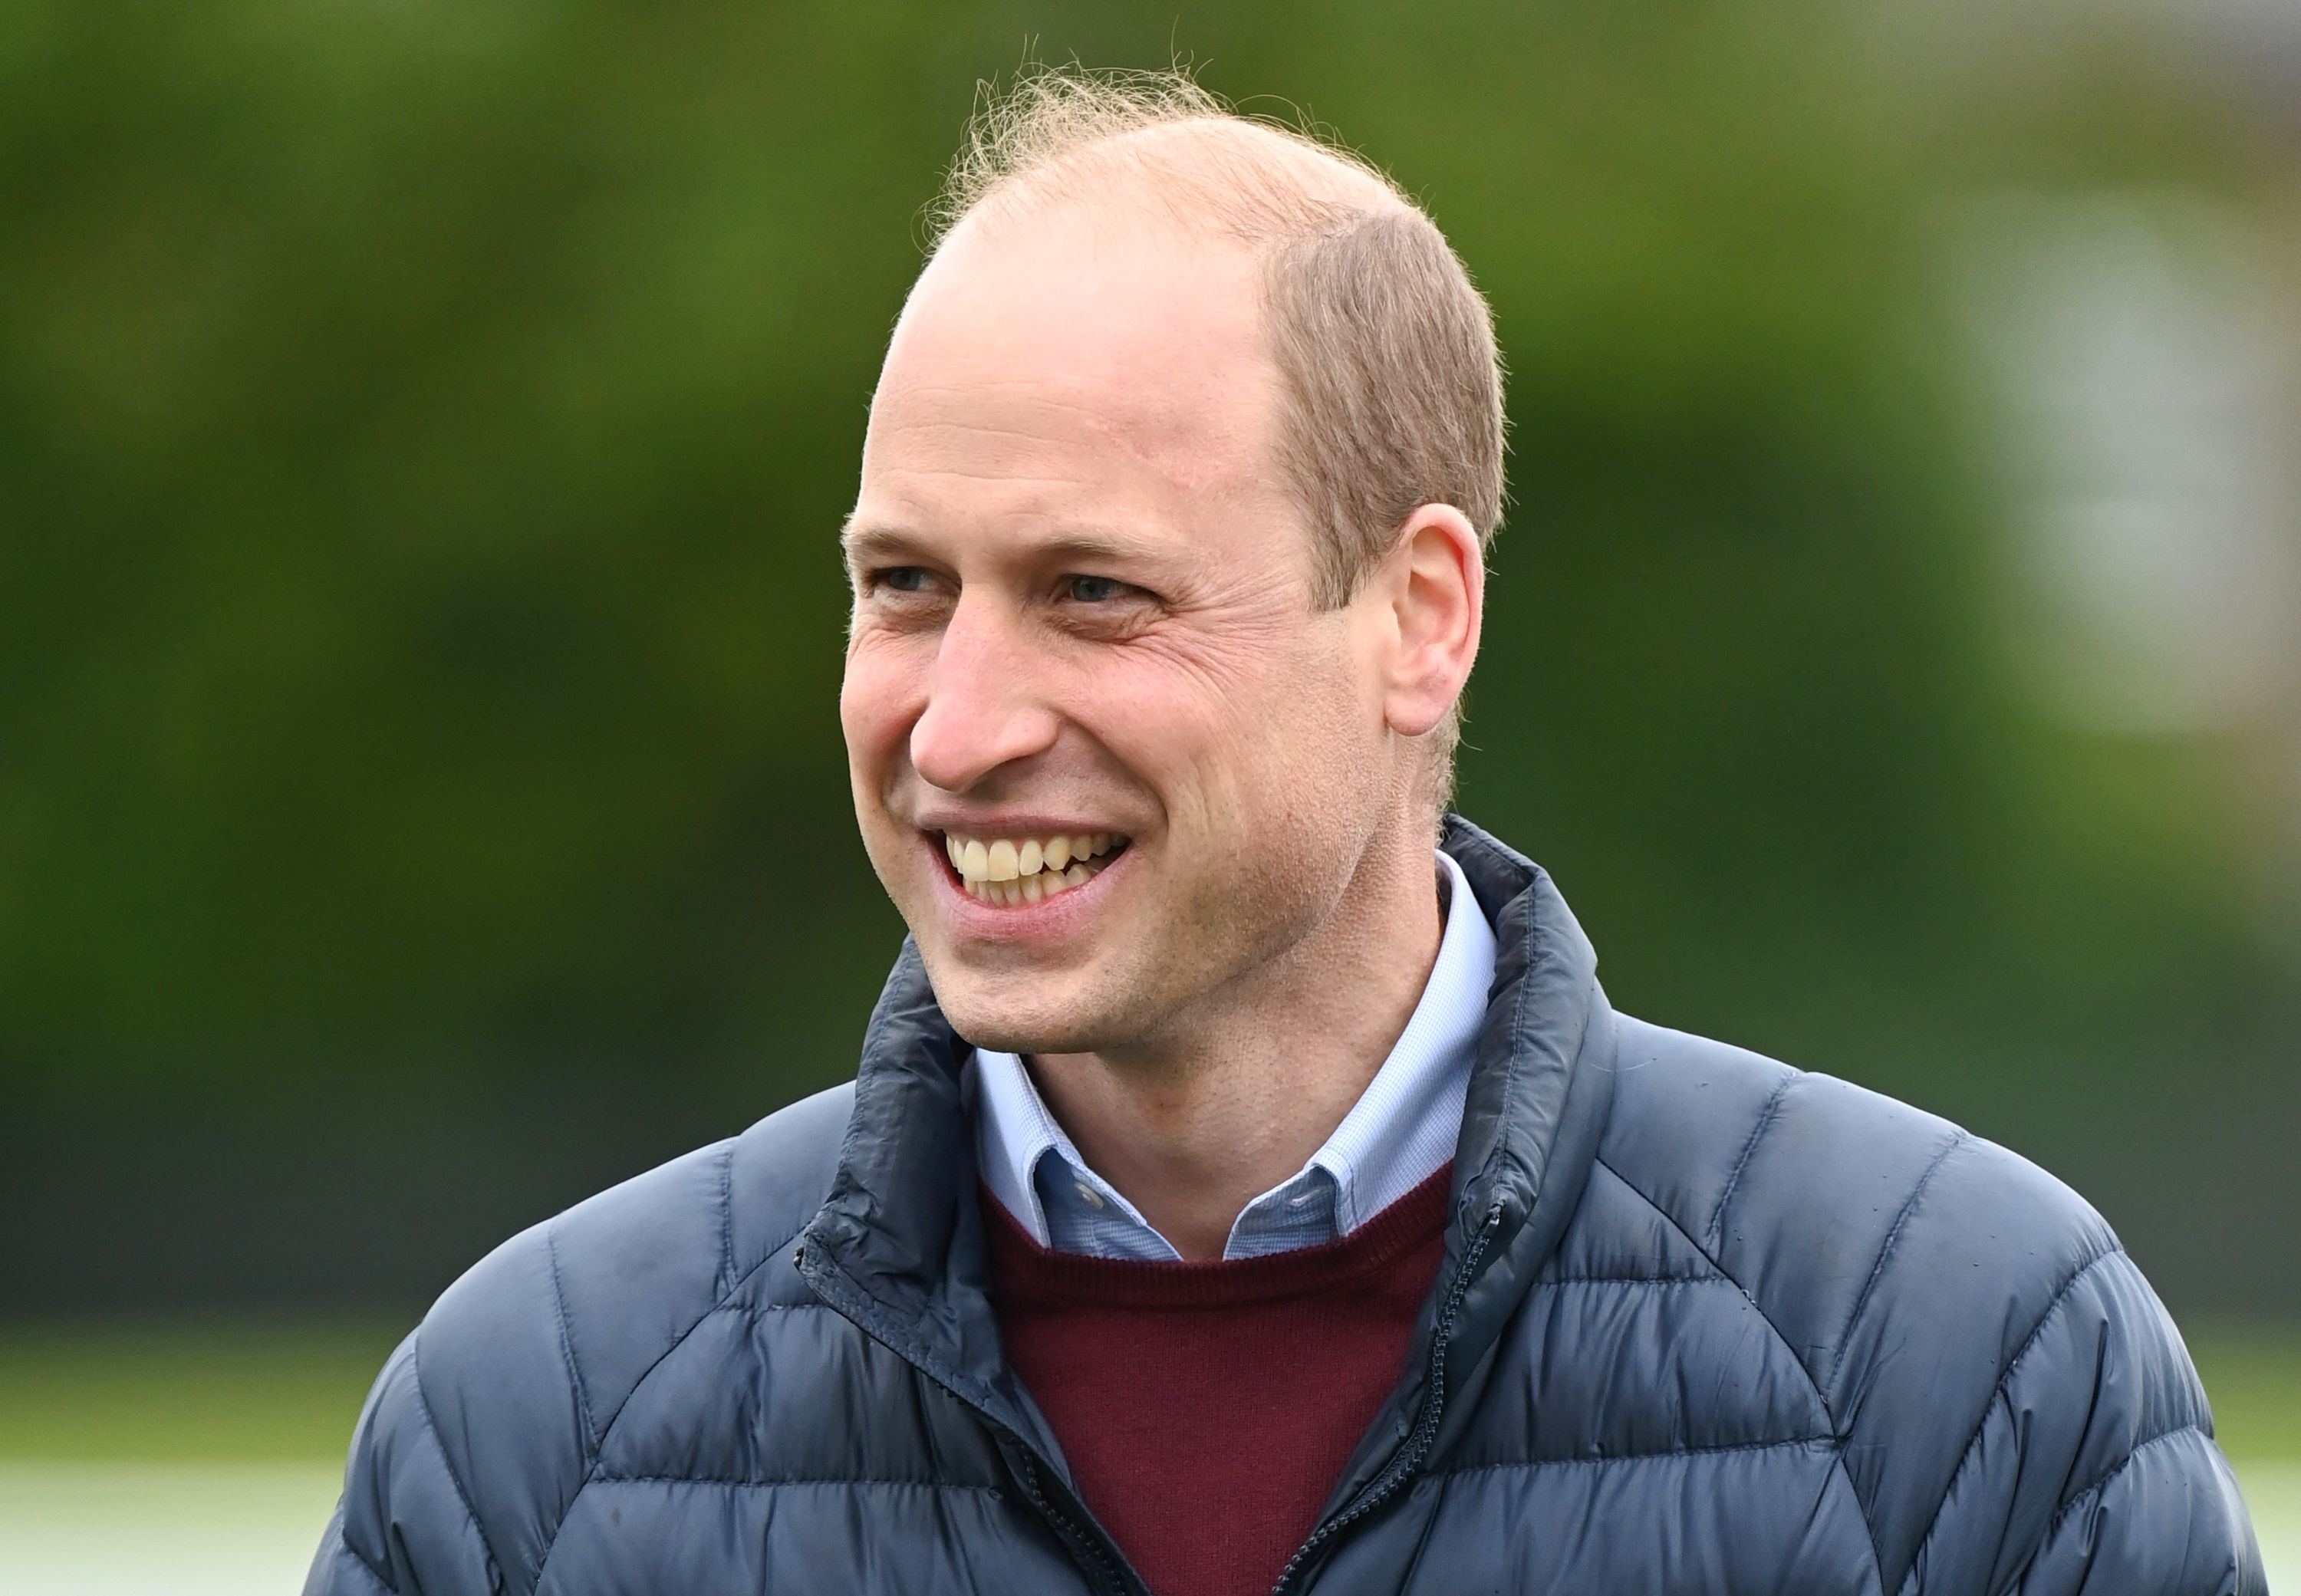 Prince William's birthday greetings from the Royal Family